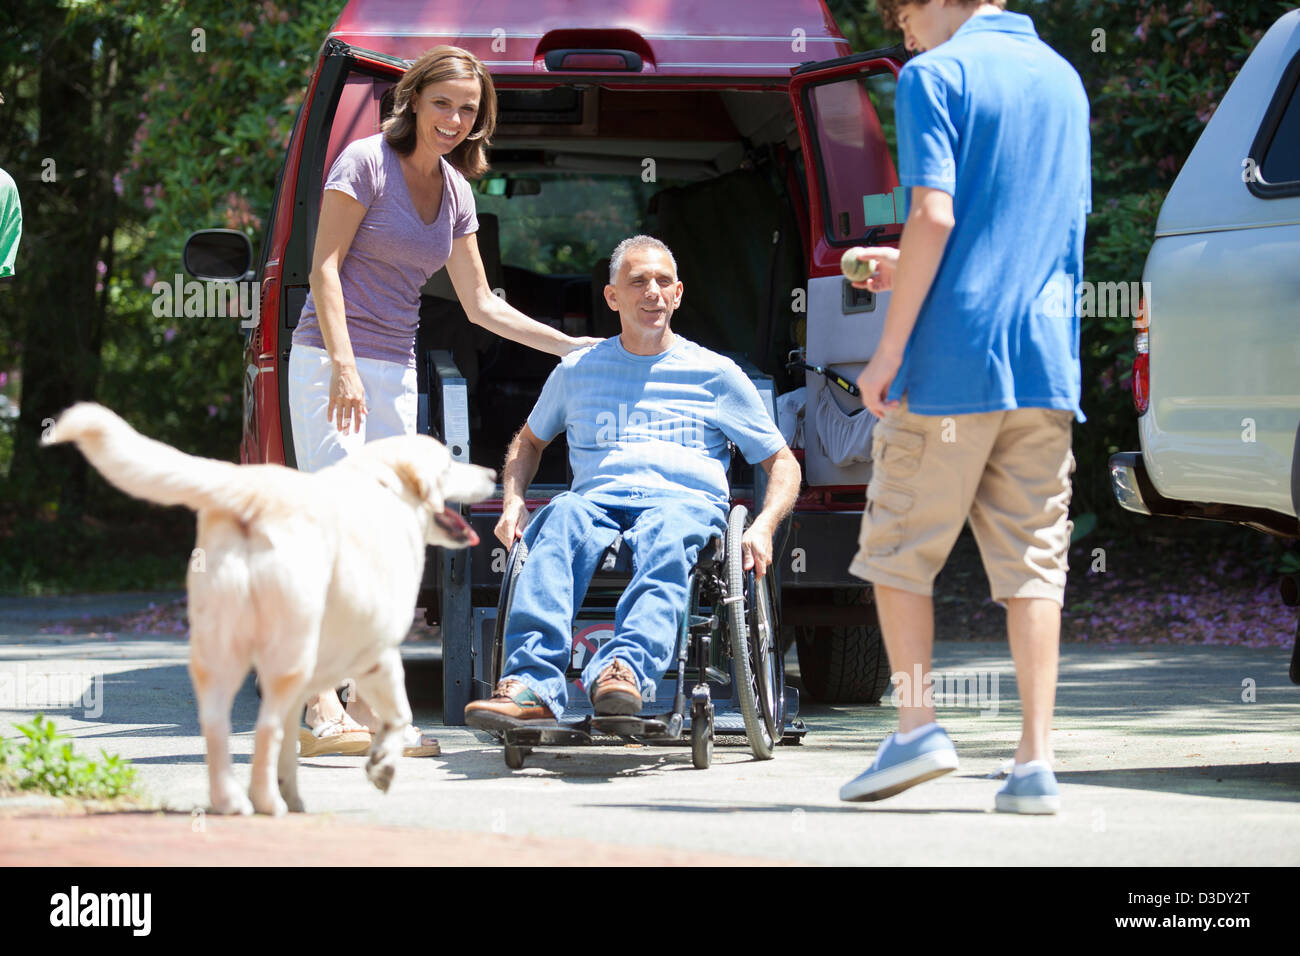 Man with spinal cord injury exiting an accessible van to see his family - Stock Image